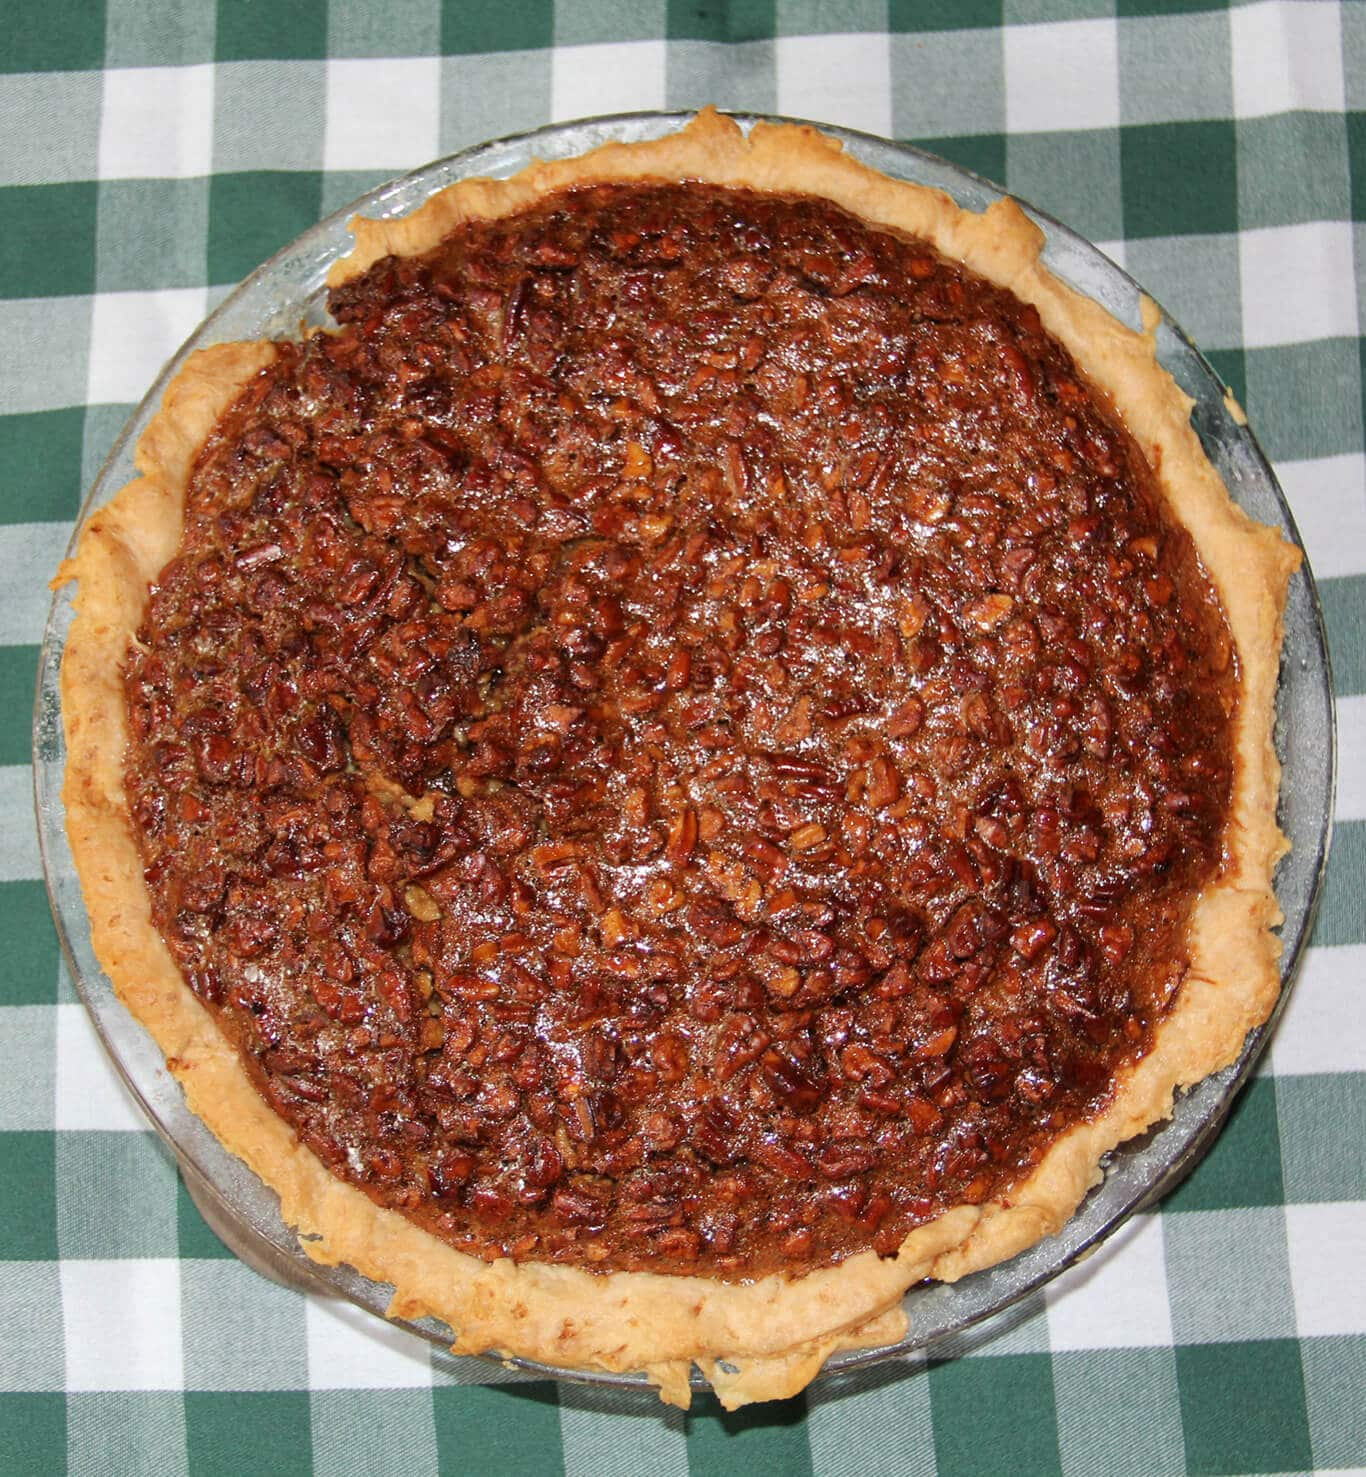 Southern Pecan Pie made with Real Cane Syrup for Richer Flavor